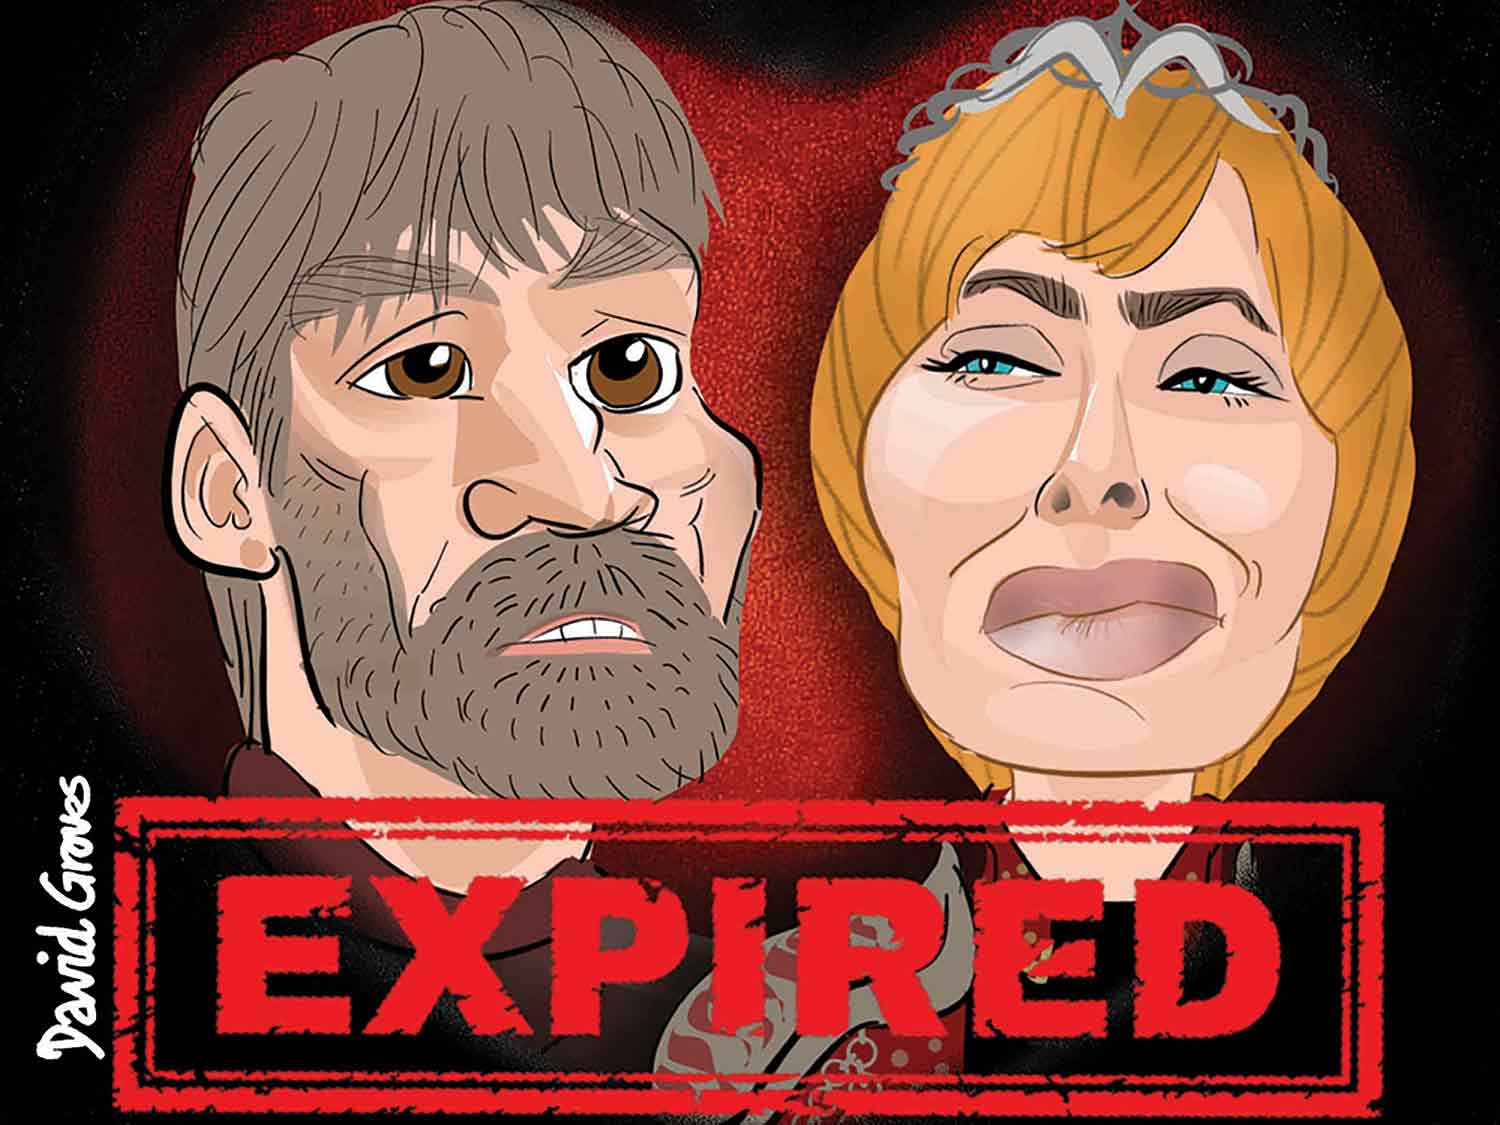 A caricature of Jamie Lanister acted by Nikolaj Coster-Waldau and a caricature of Cersei Lannister acted by Lena Headey